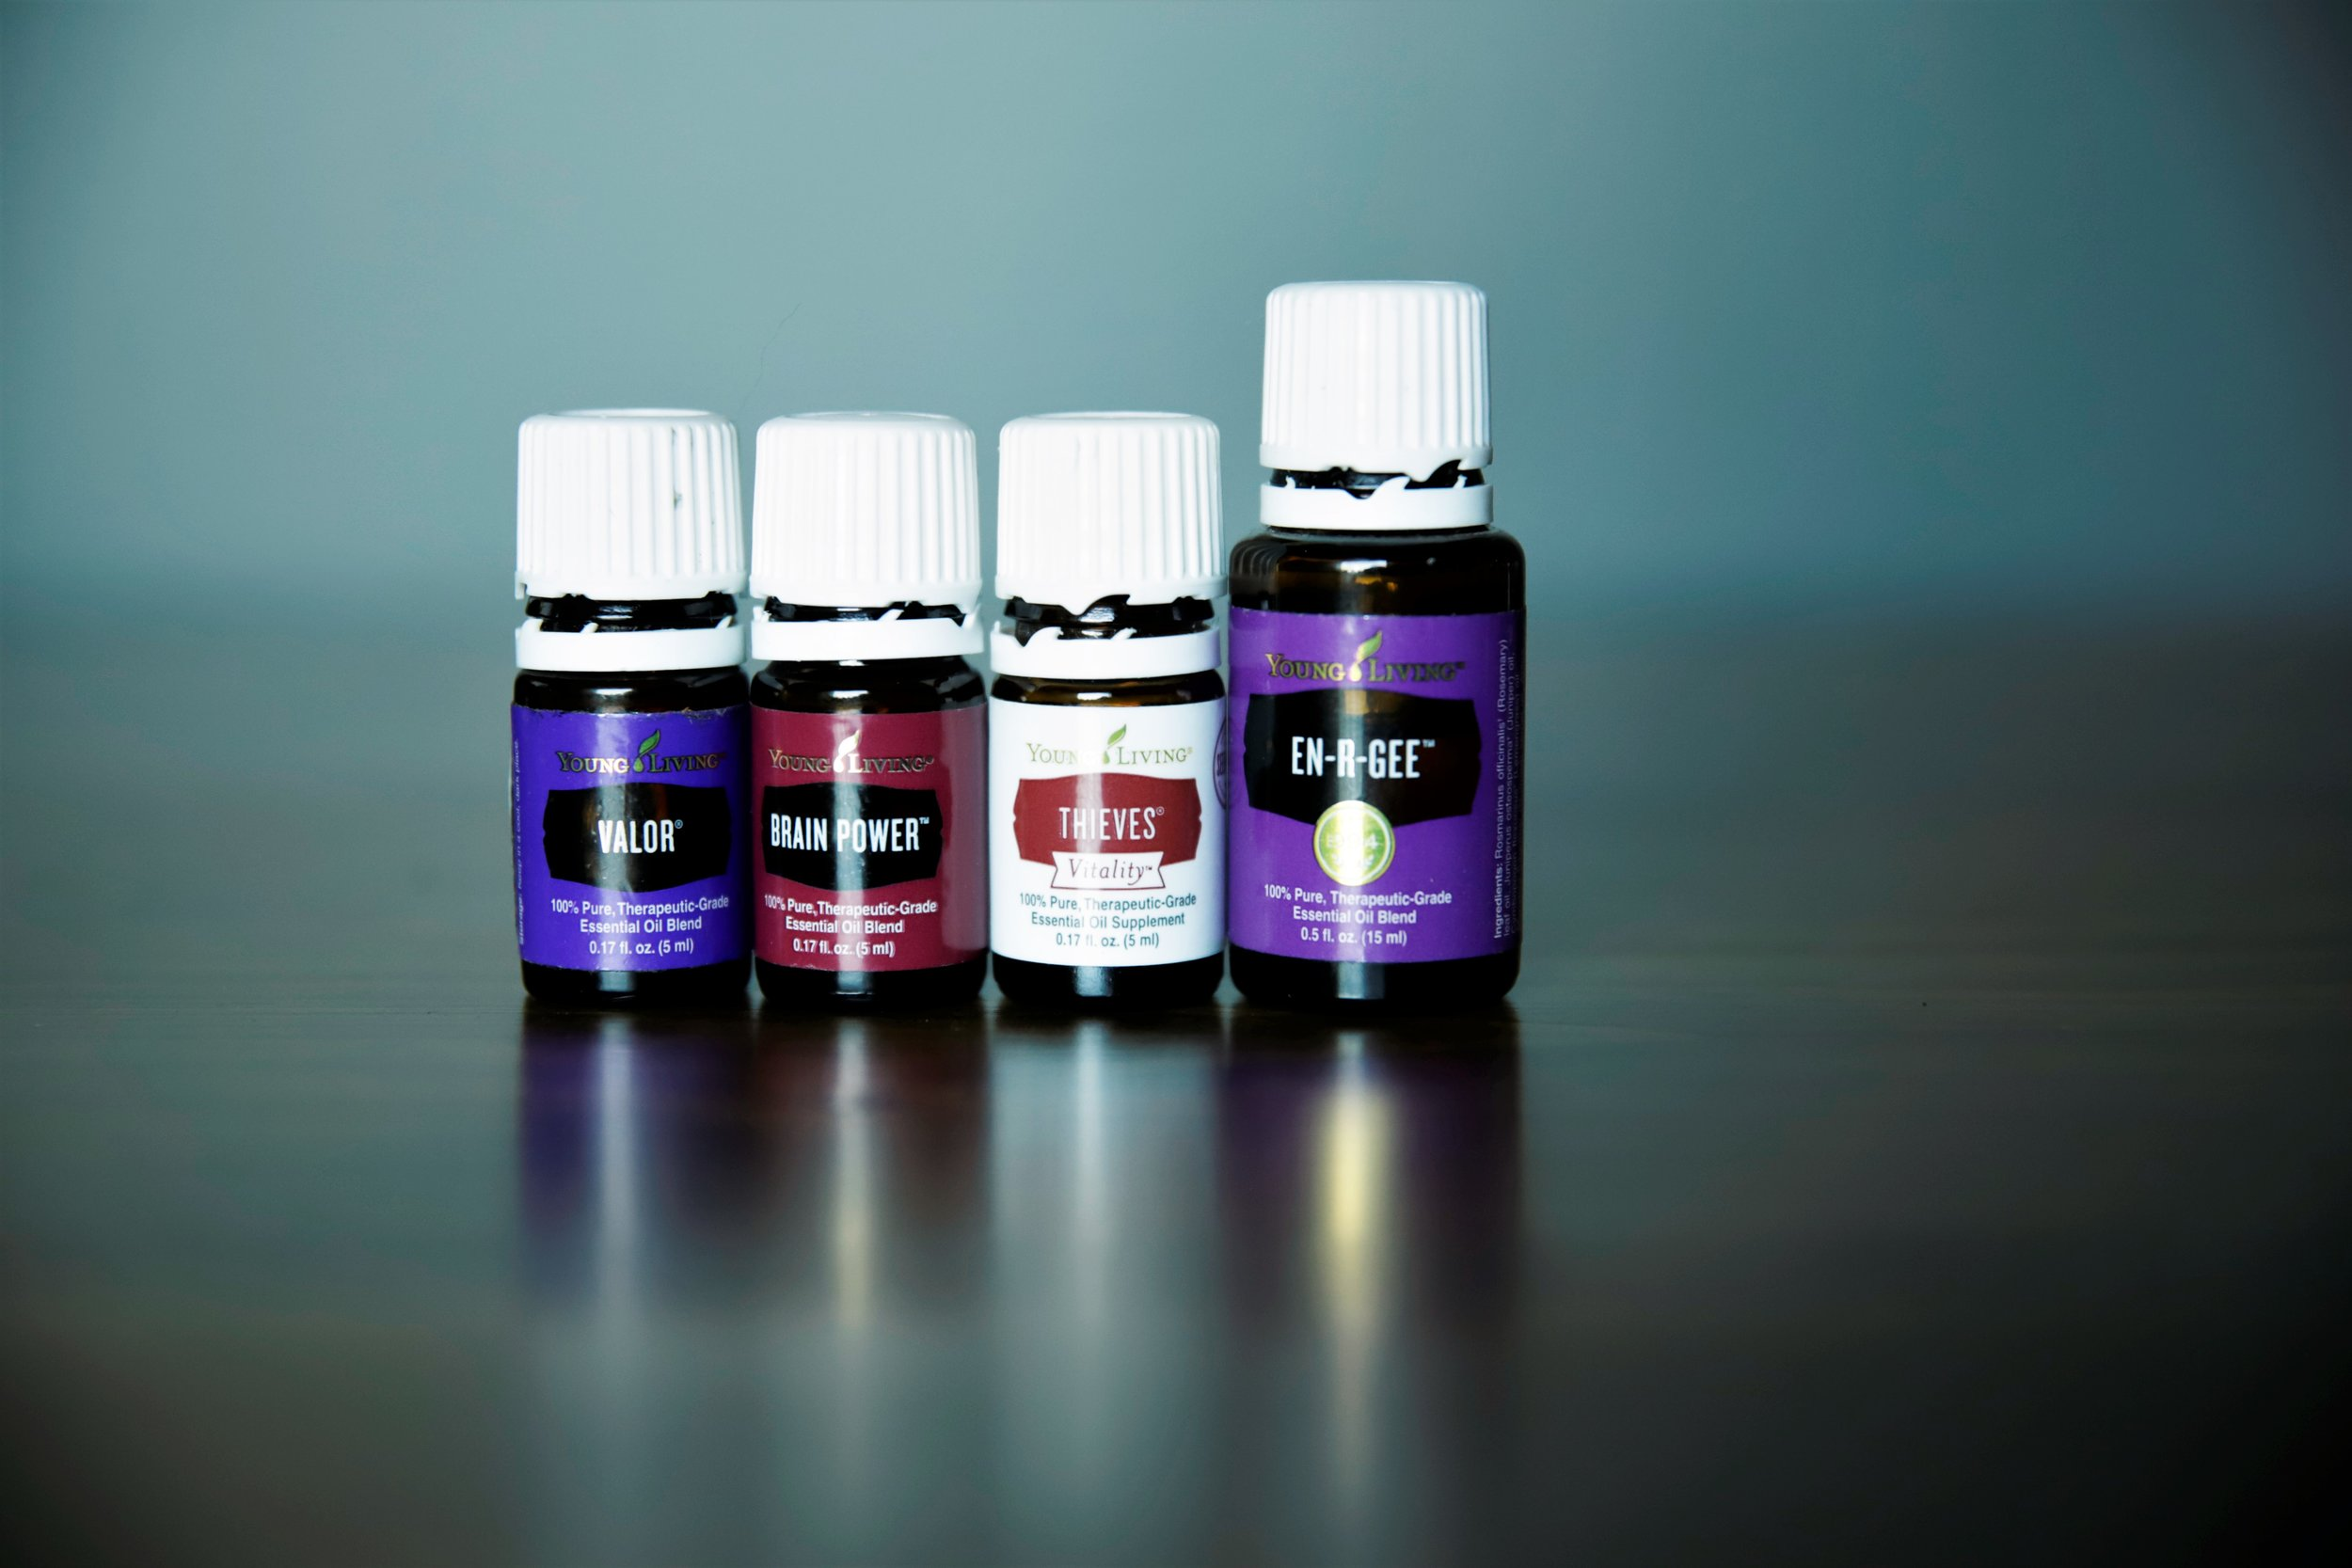 Just a note: Statements made on this website about Young Living Essential Oils have not been evaluated by the FDA. These products and information are not intended to diagnose, treat, cure or prevent any disease. Anyone suffering from disease or injury should consult with a physician. If you are currently on medication, please do not stop taking medications without prior consult with your Physician.